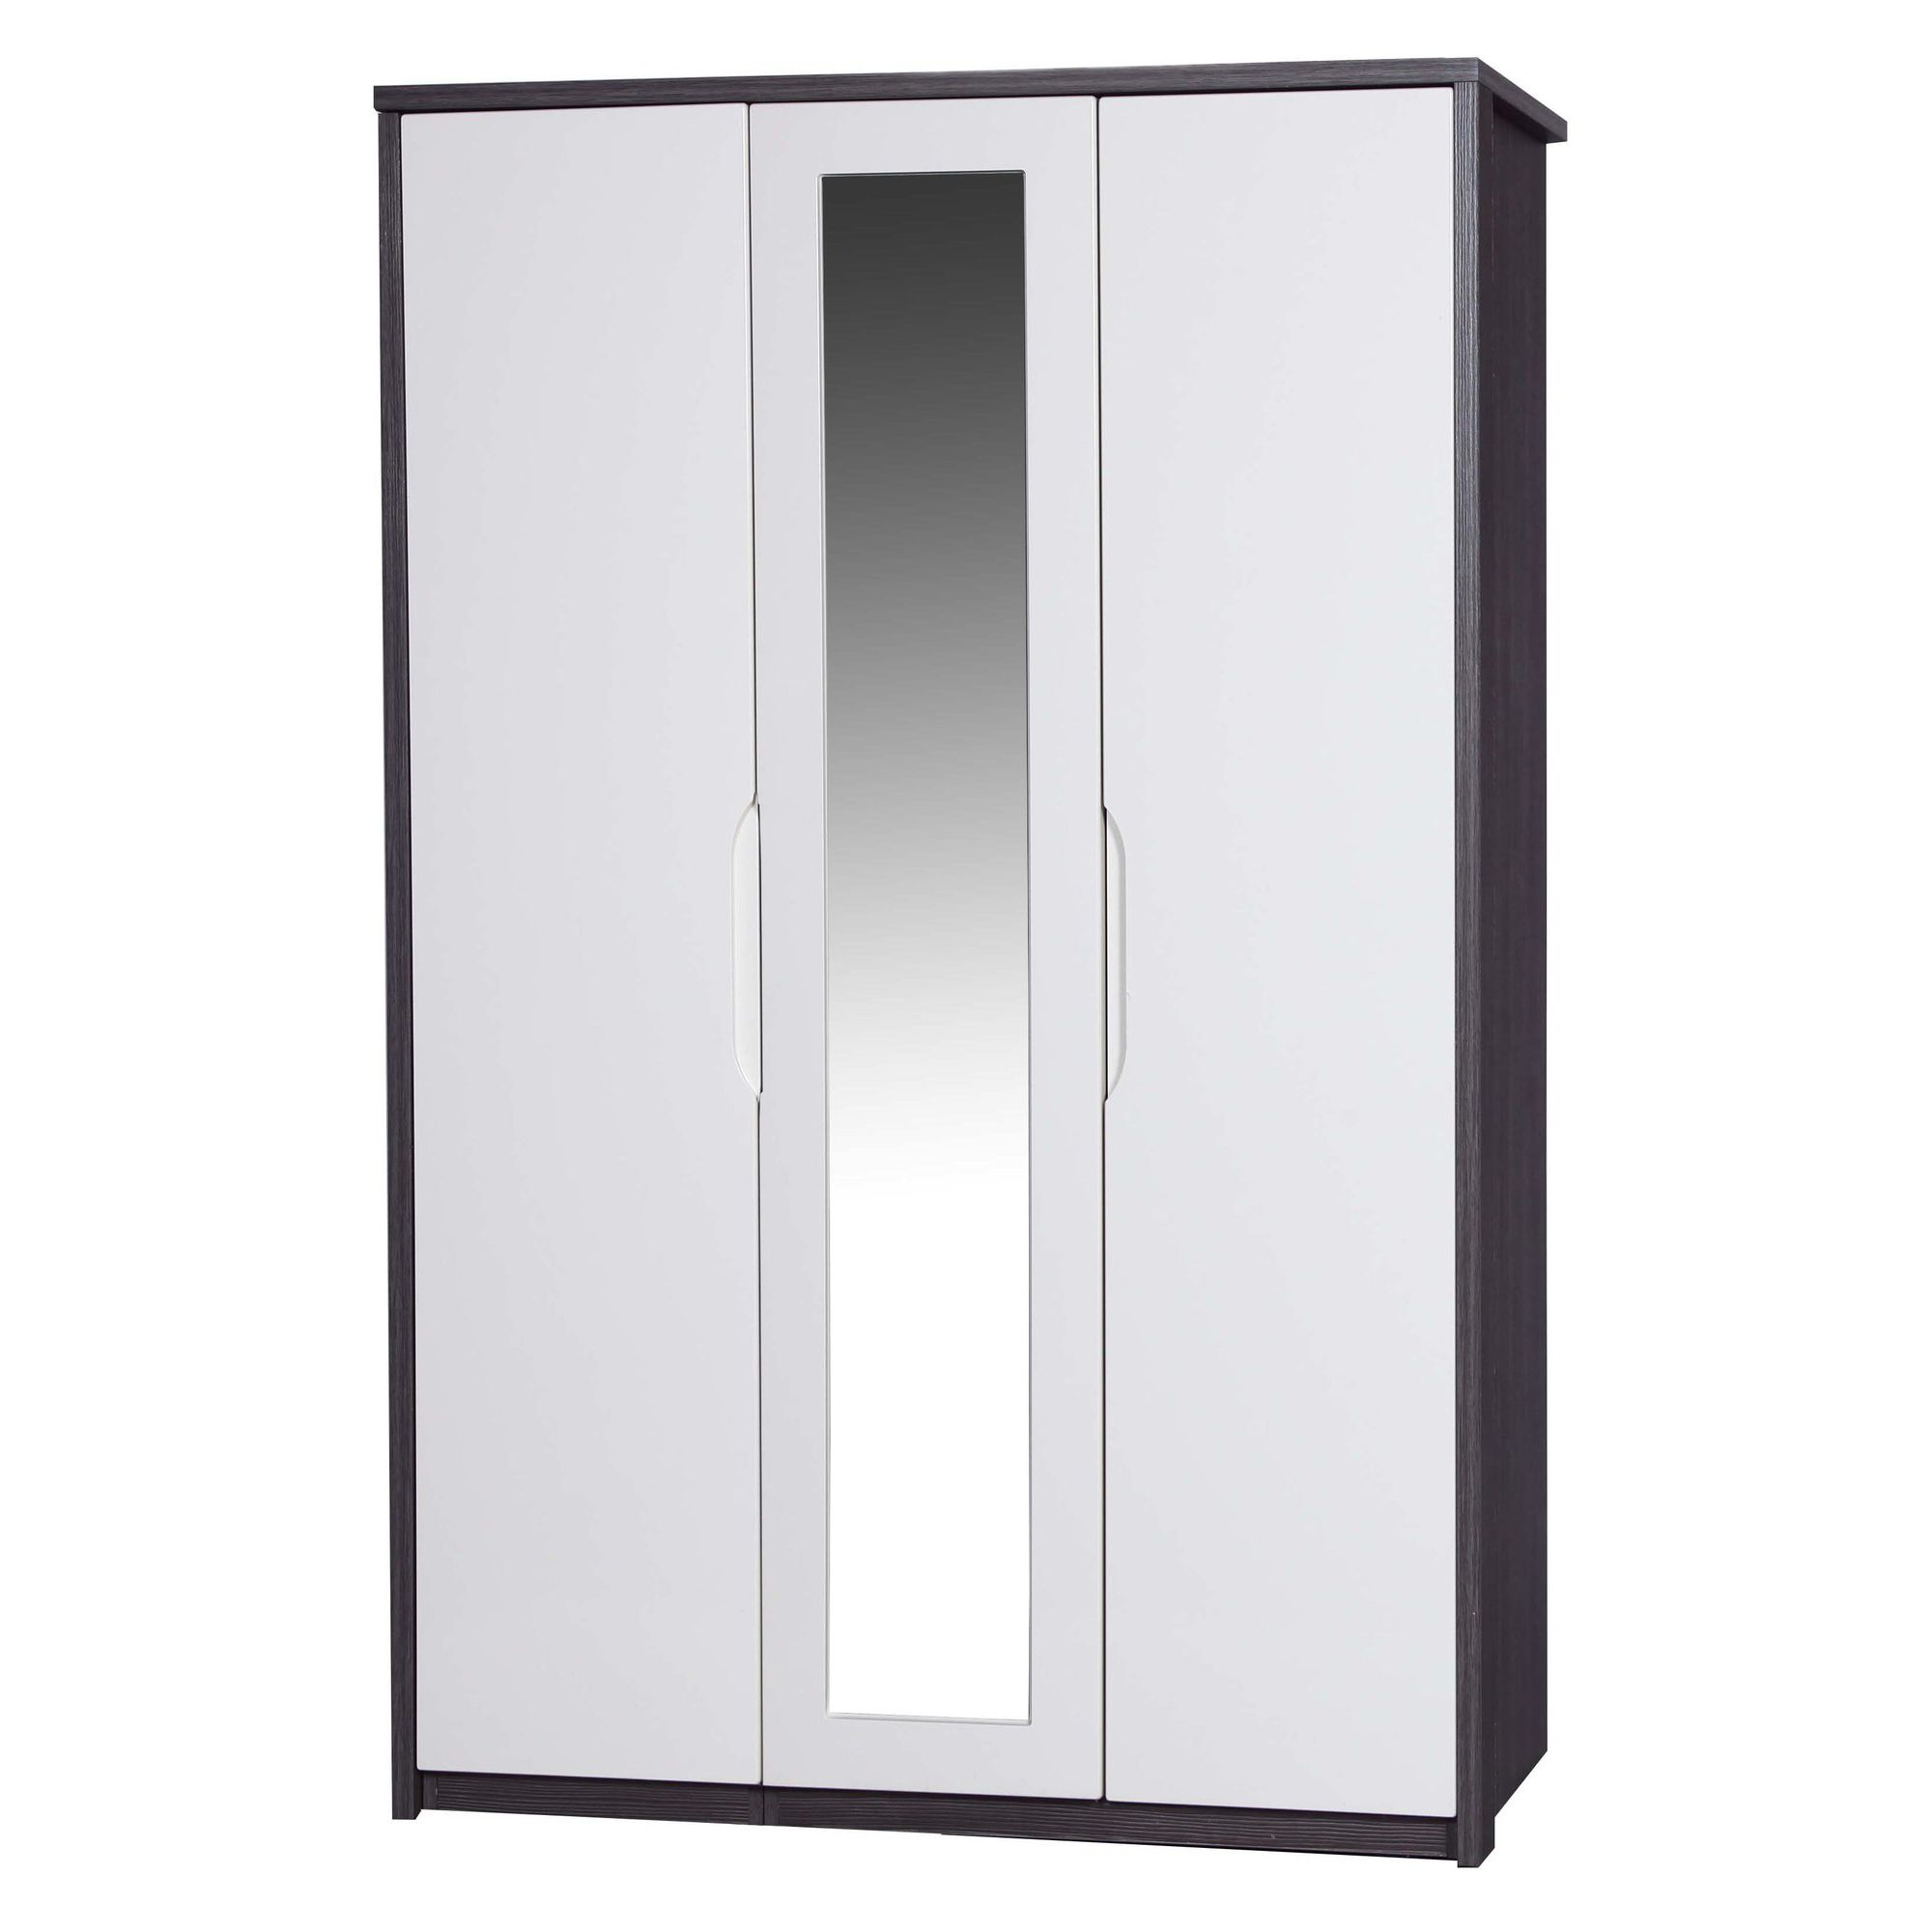 Alto Furniture Avola 3 Door Wardrobe with Mirror - Grey Avola Carcass With Cream Gloss at Tesco Direct